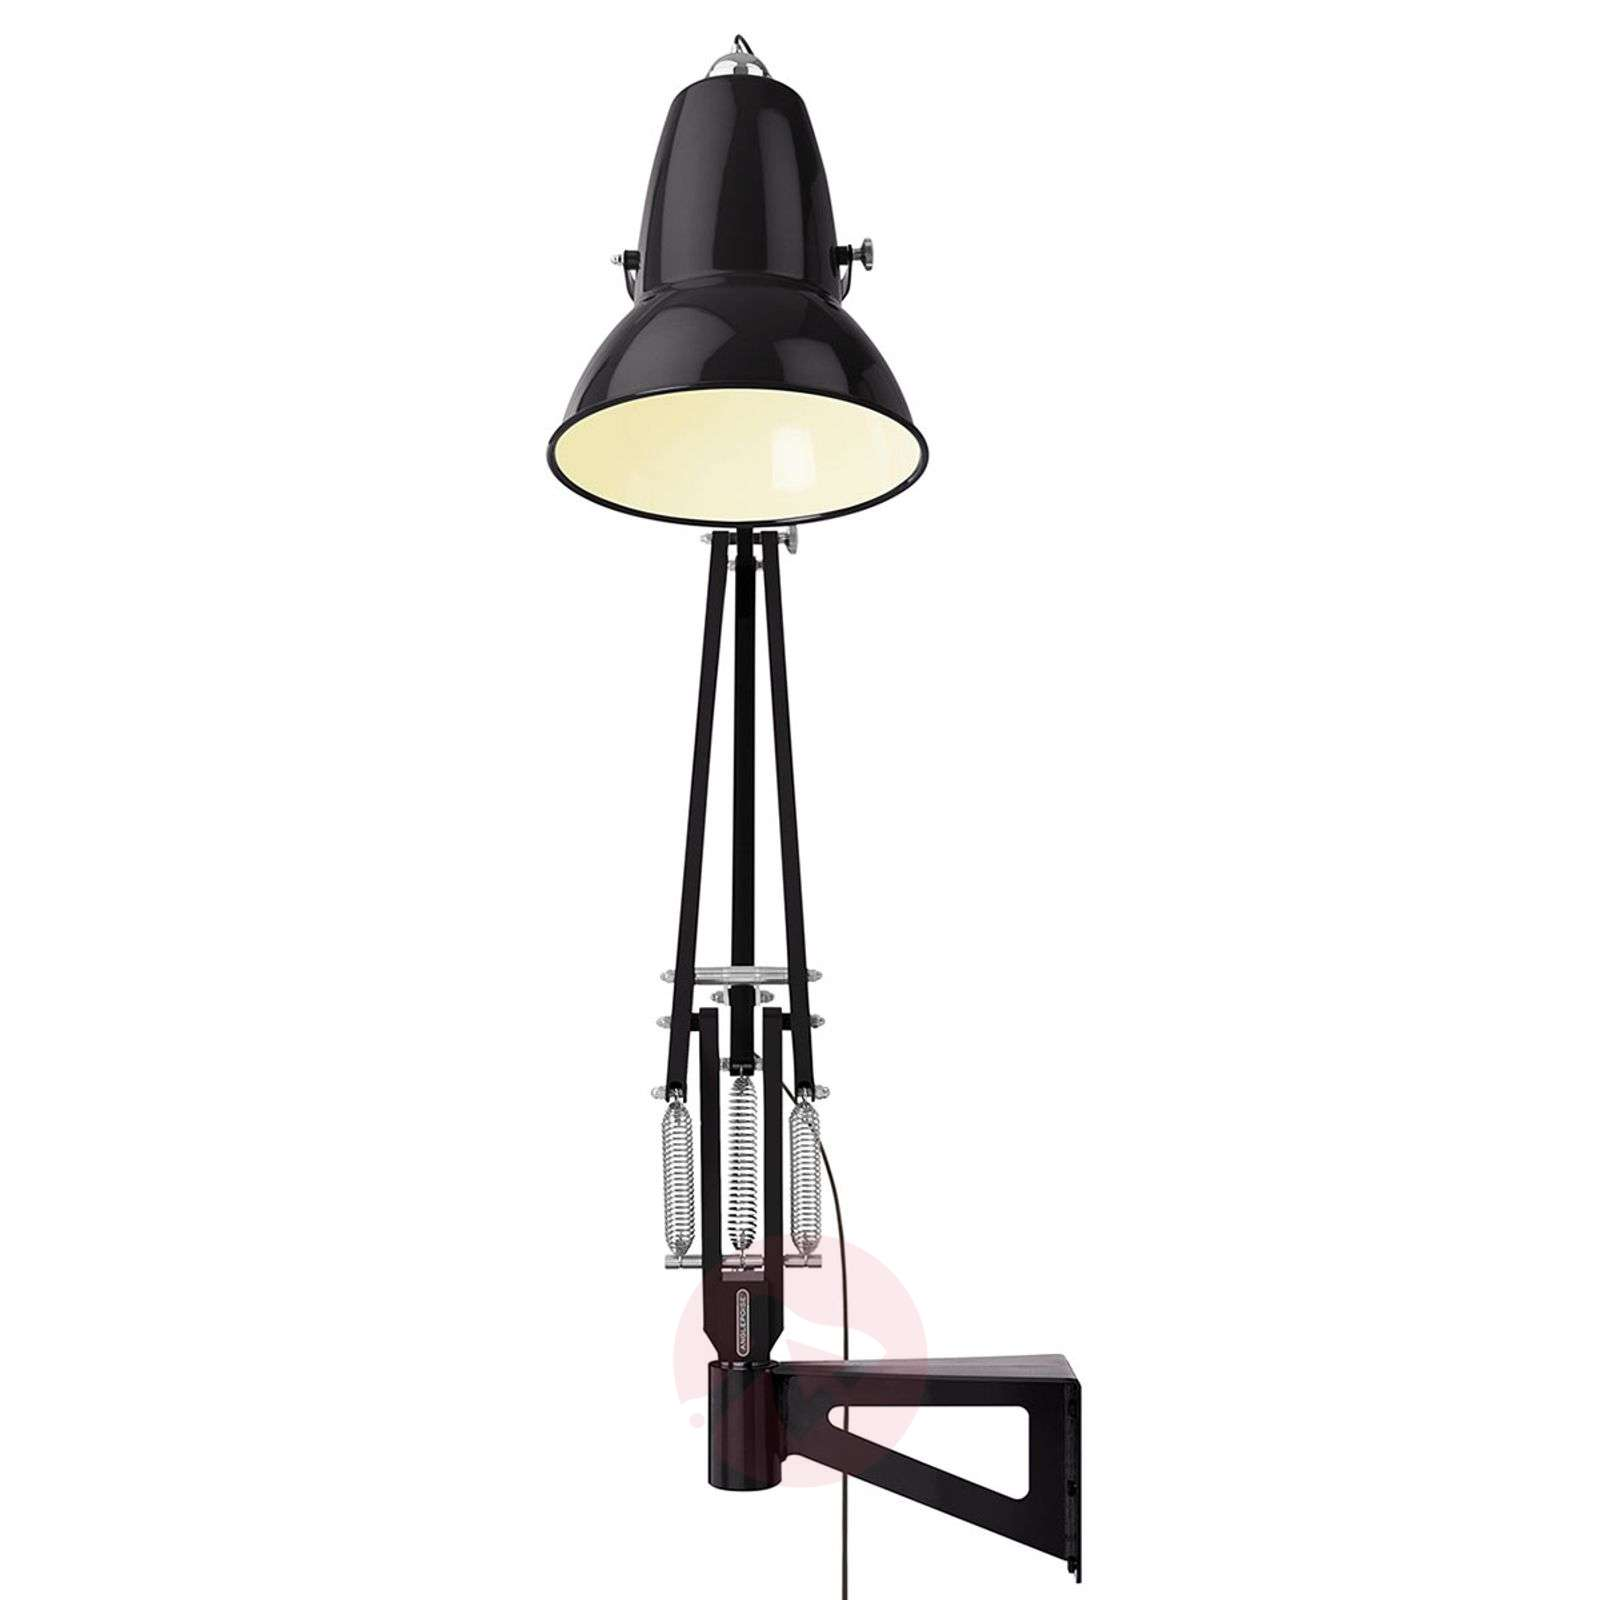 Anglepoise Original 1227 Giant IP65 wall lamp-1073053X-01